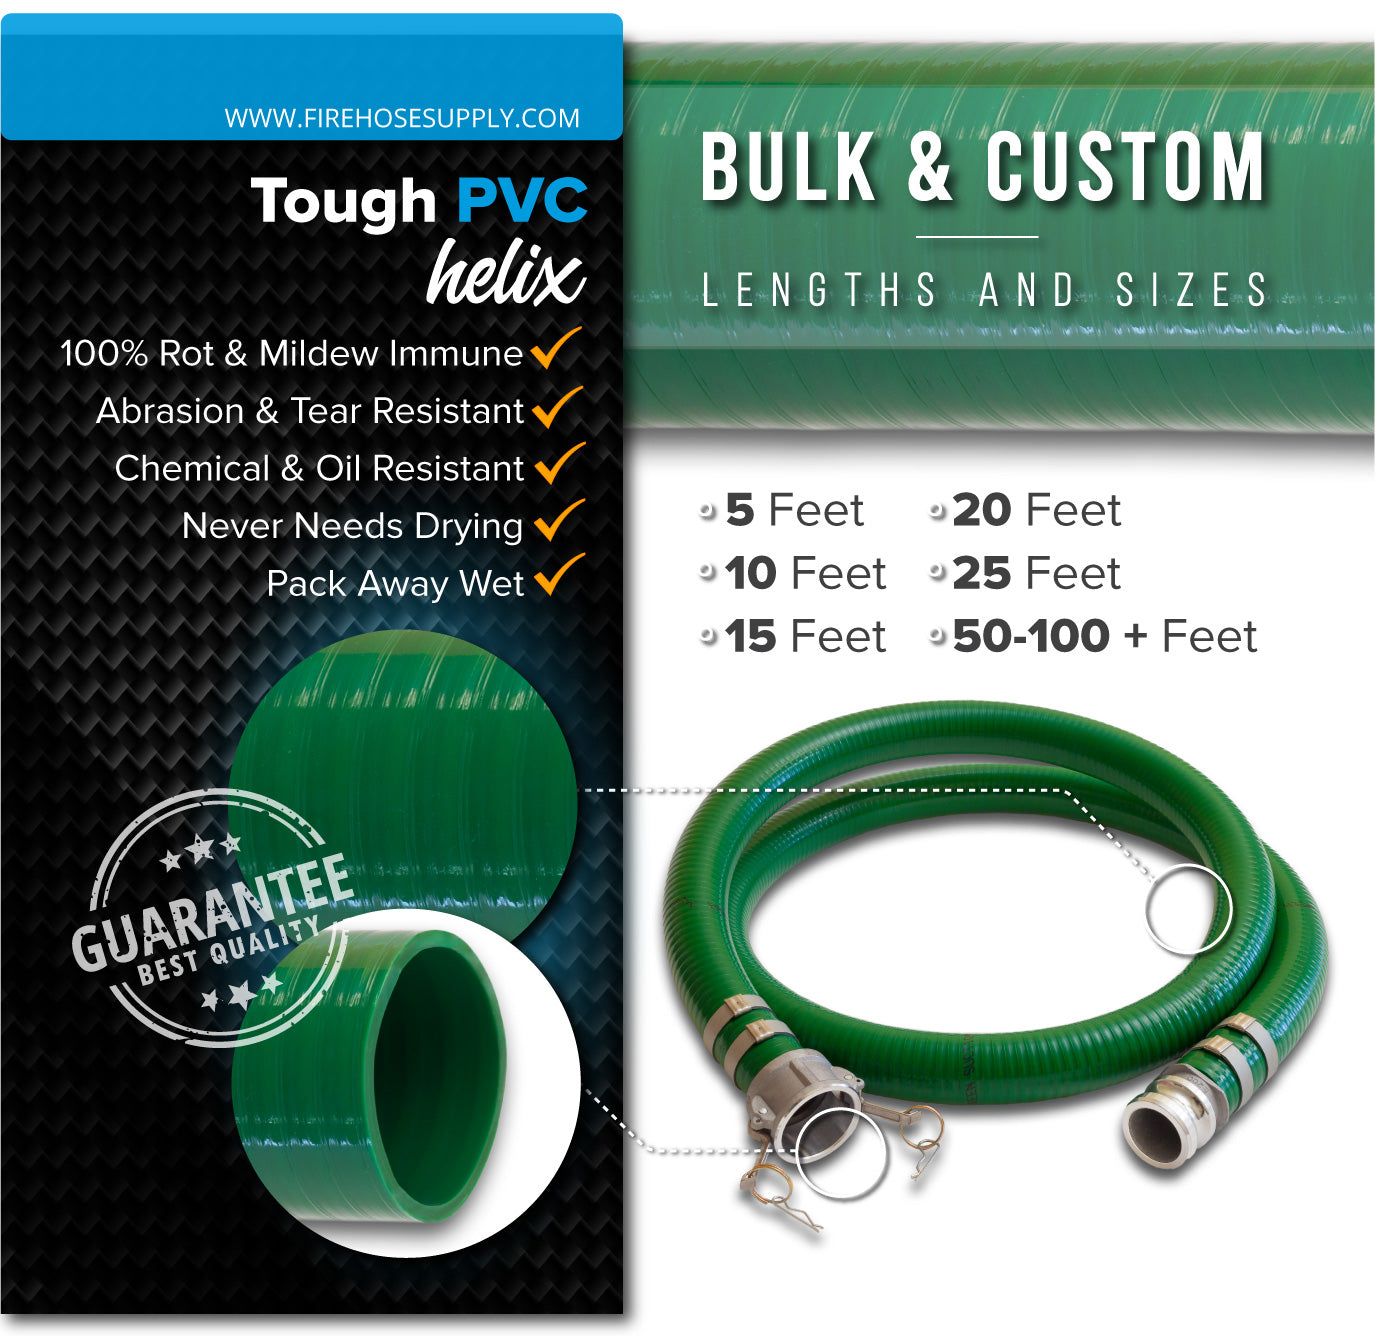 1.5 Inch Camlock Female x Male Green Suction Hose PVC Materials